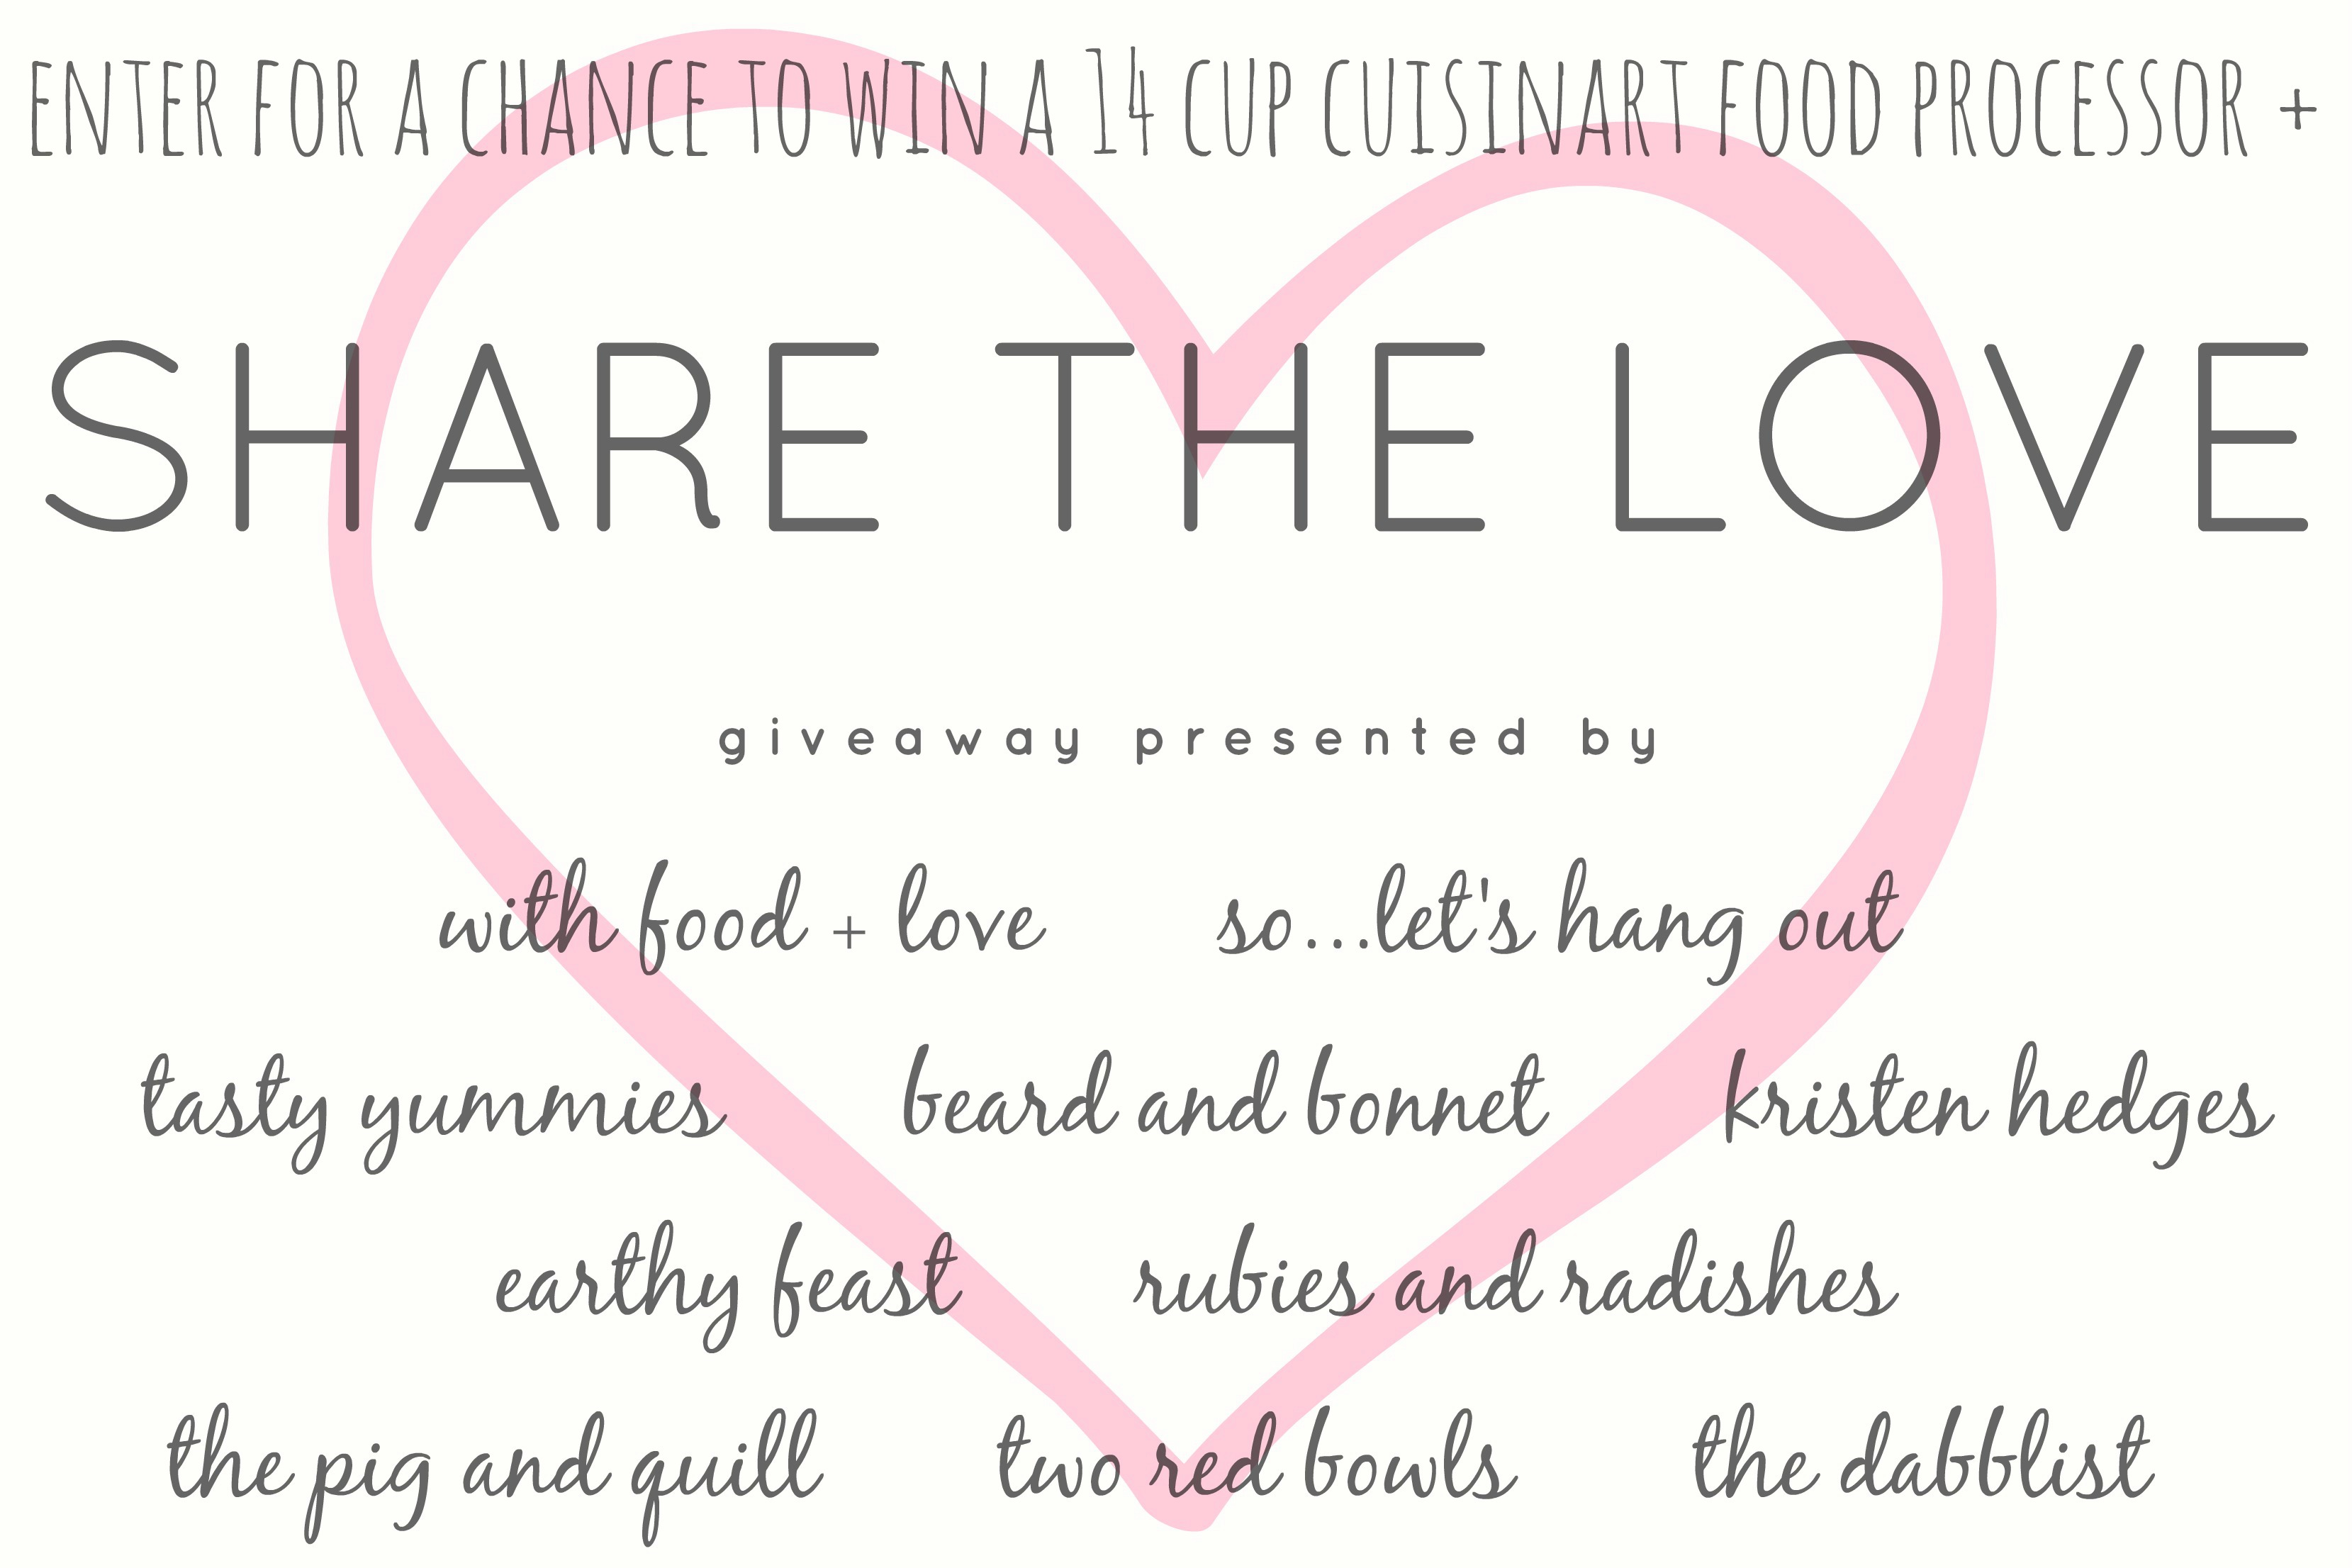 share-the-love-giveaway